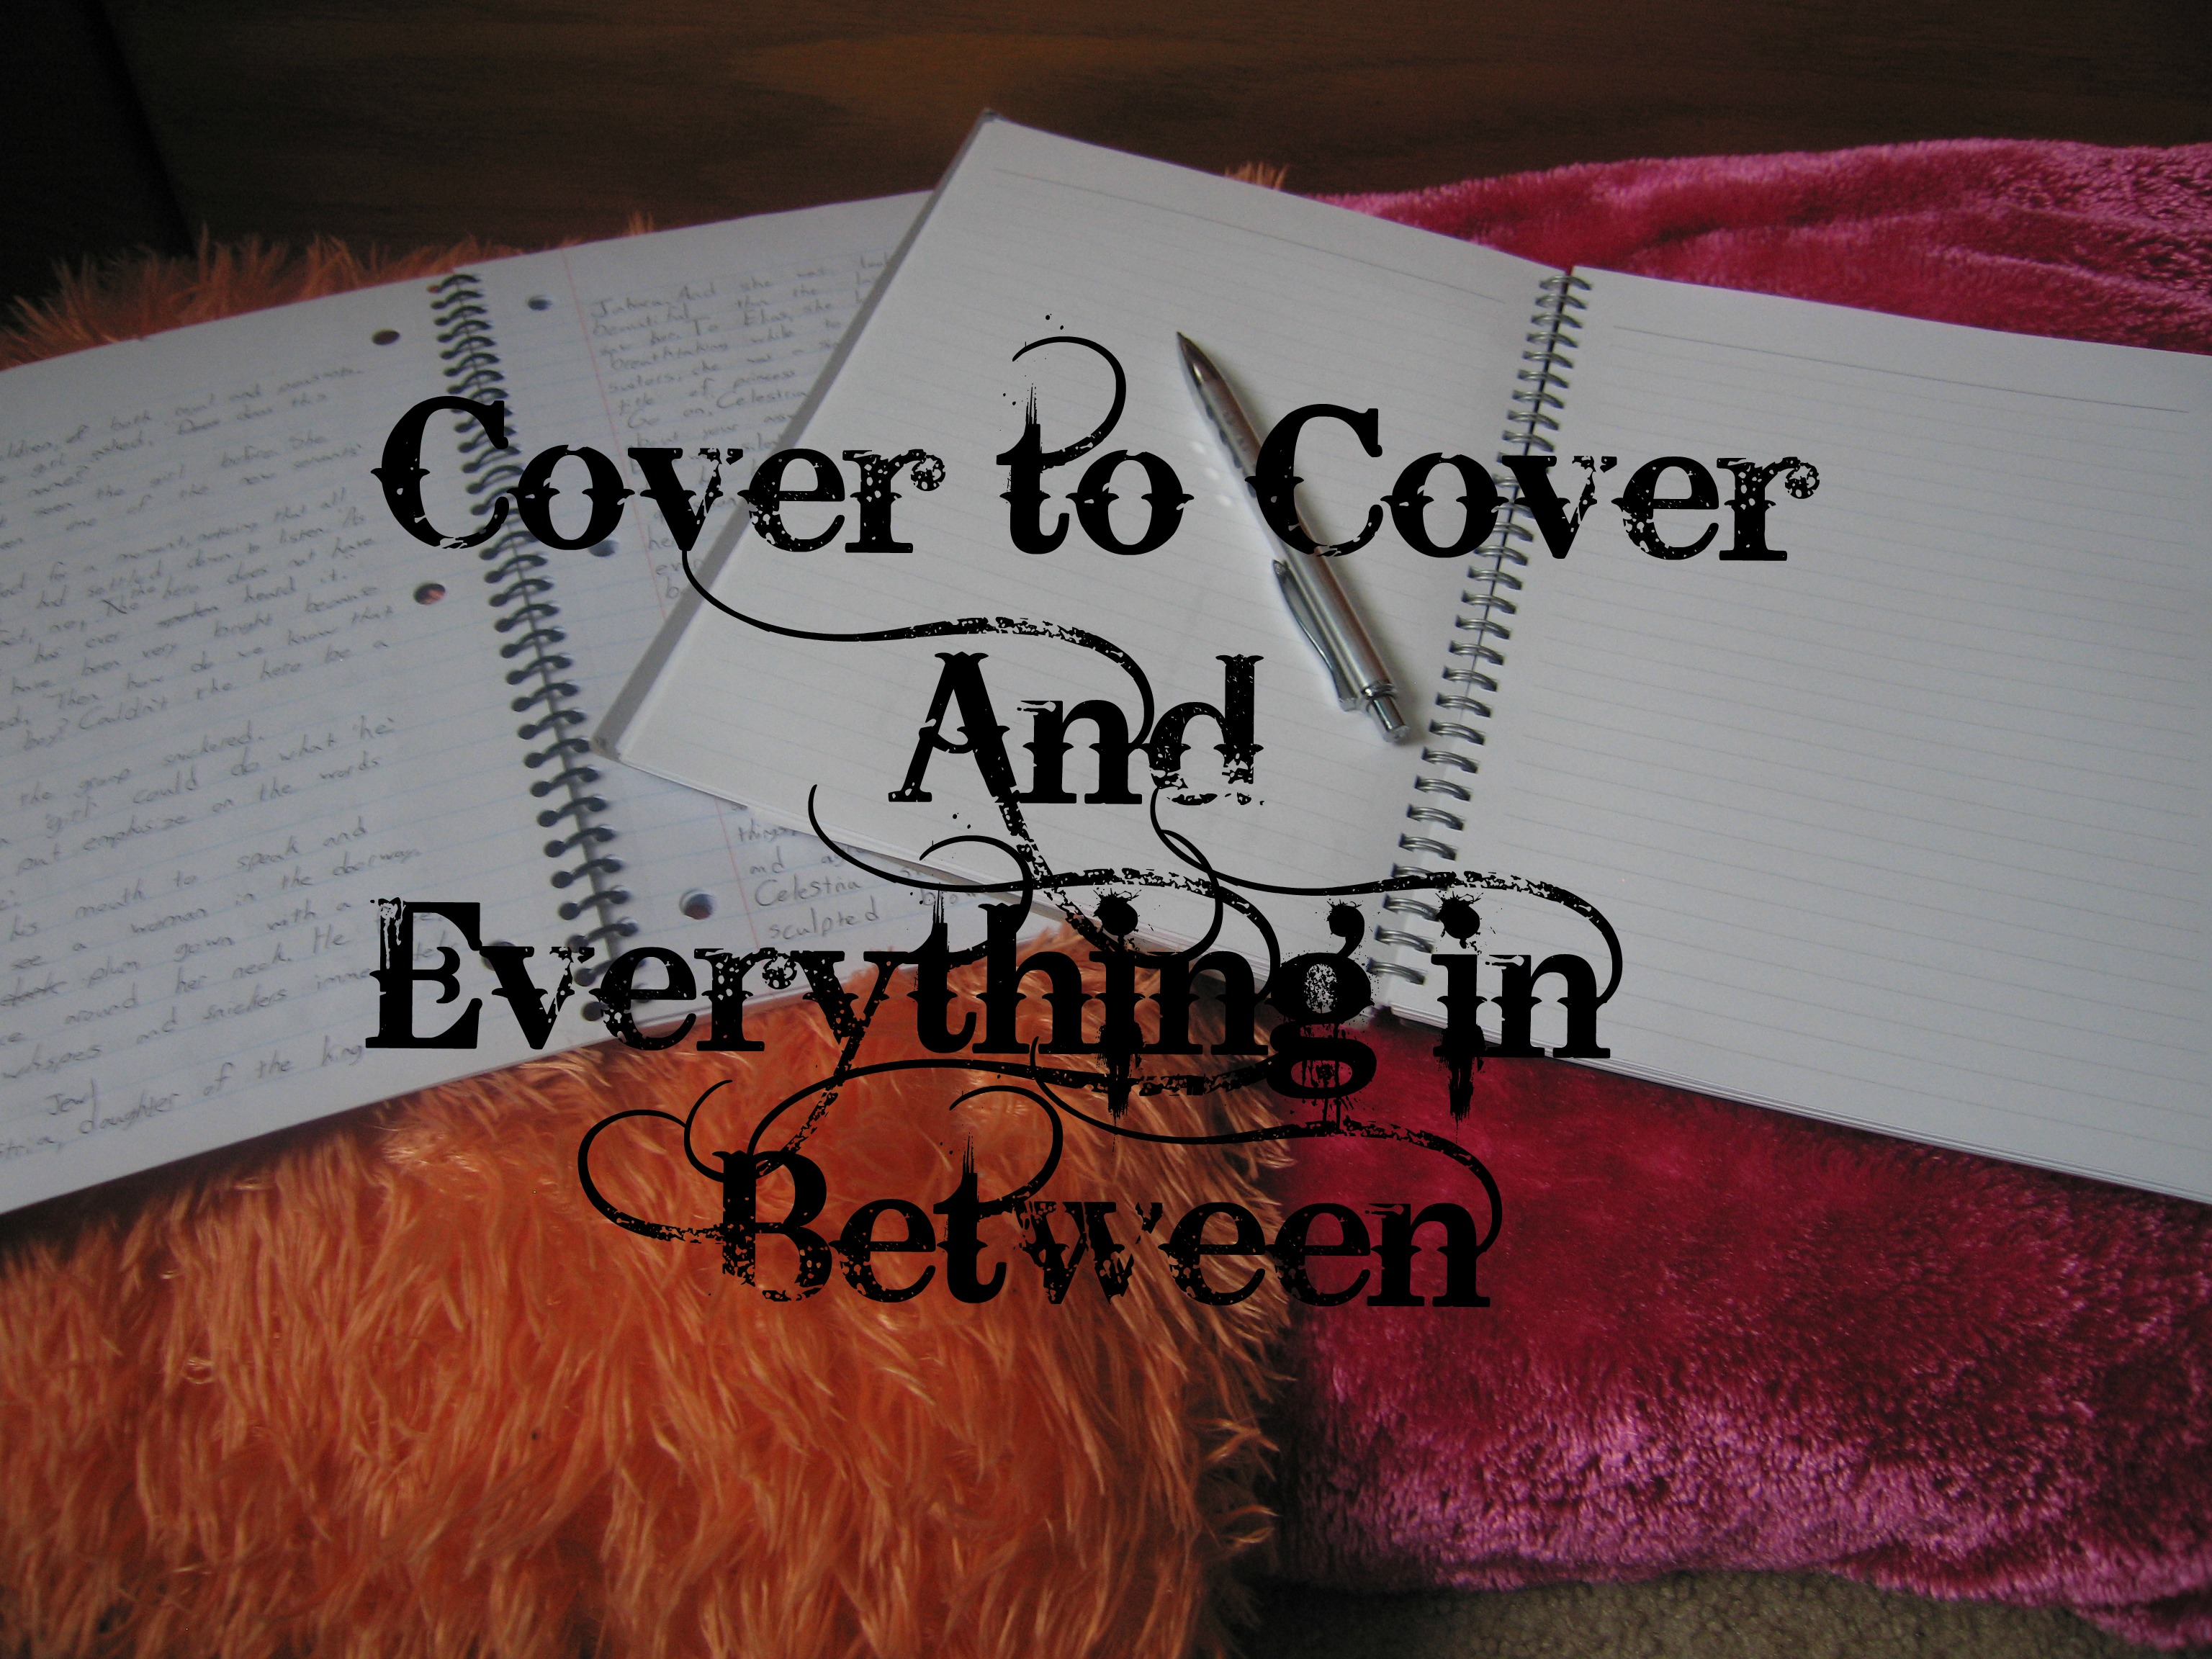 CovertoCoverandEverythinginBetween